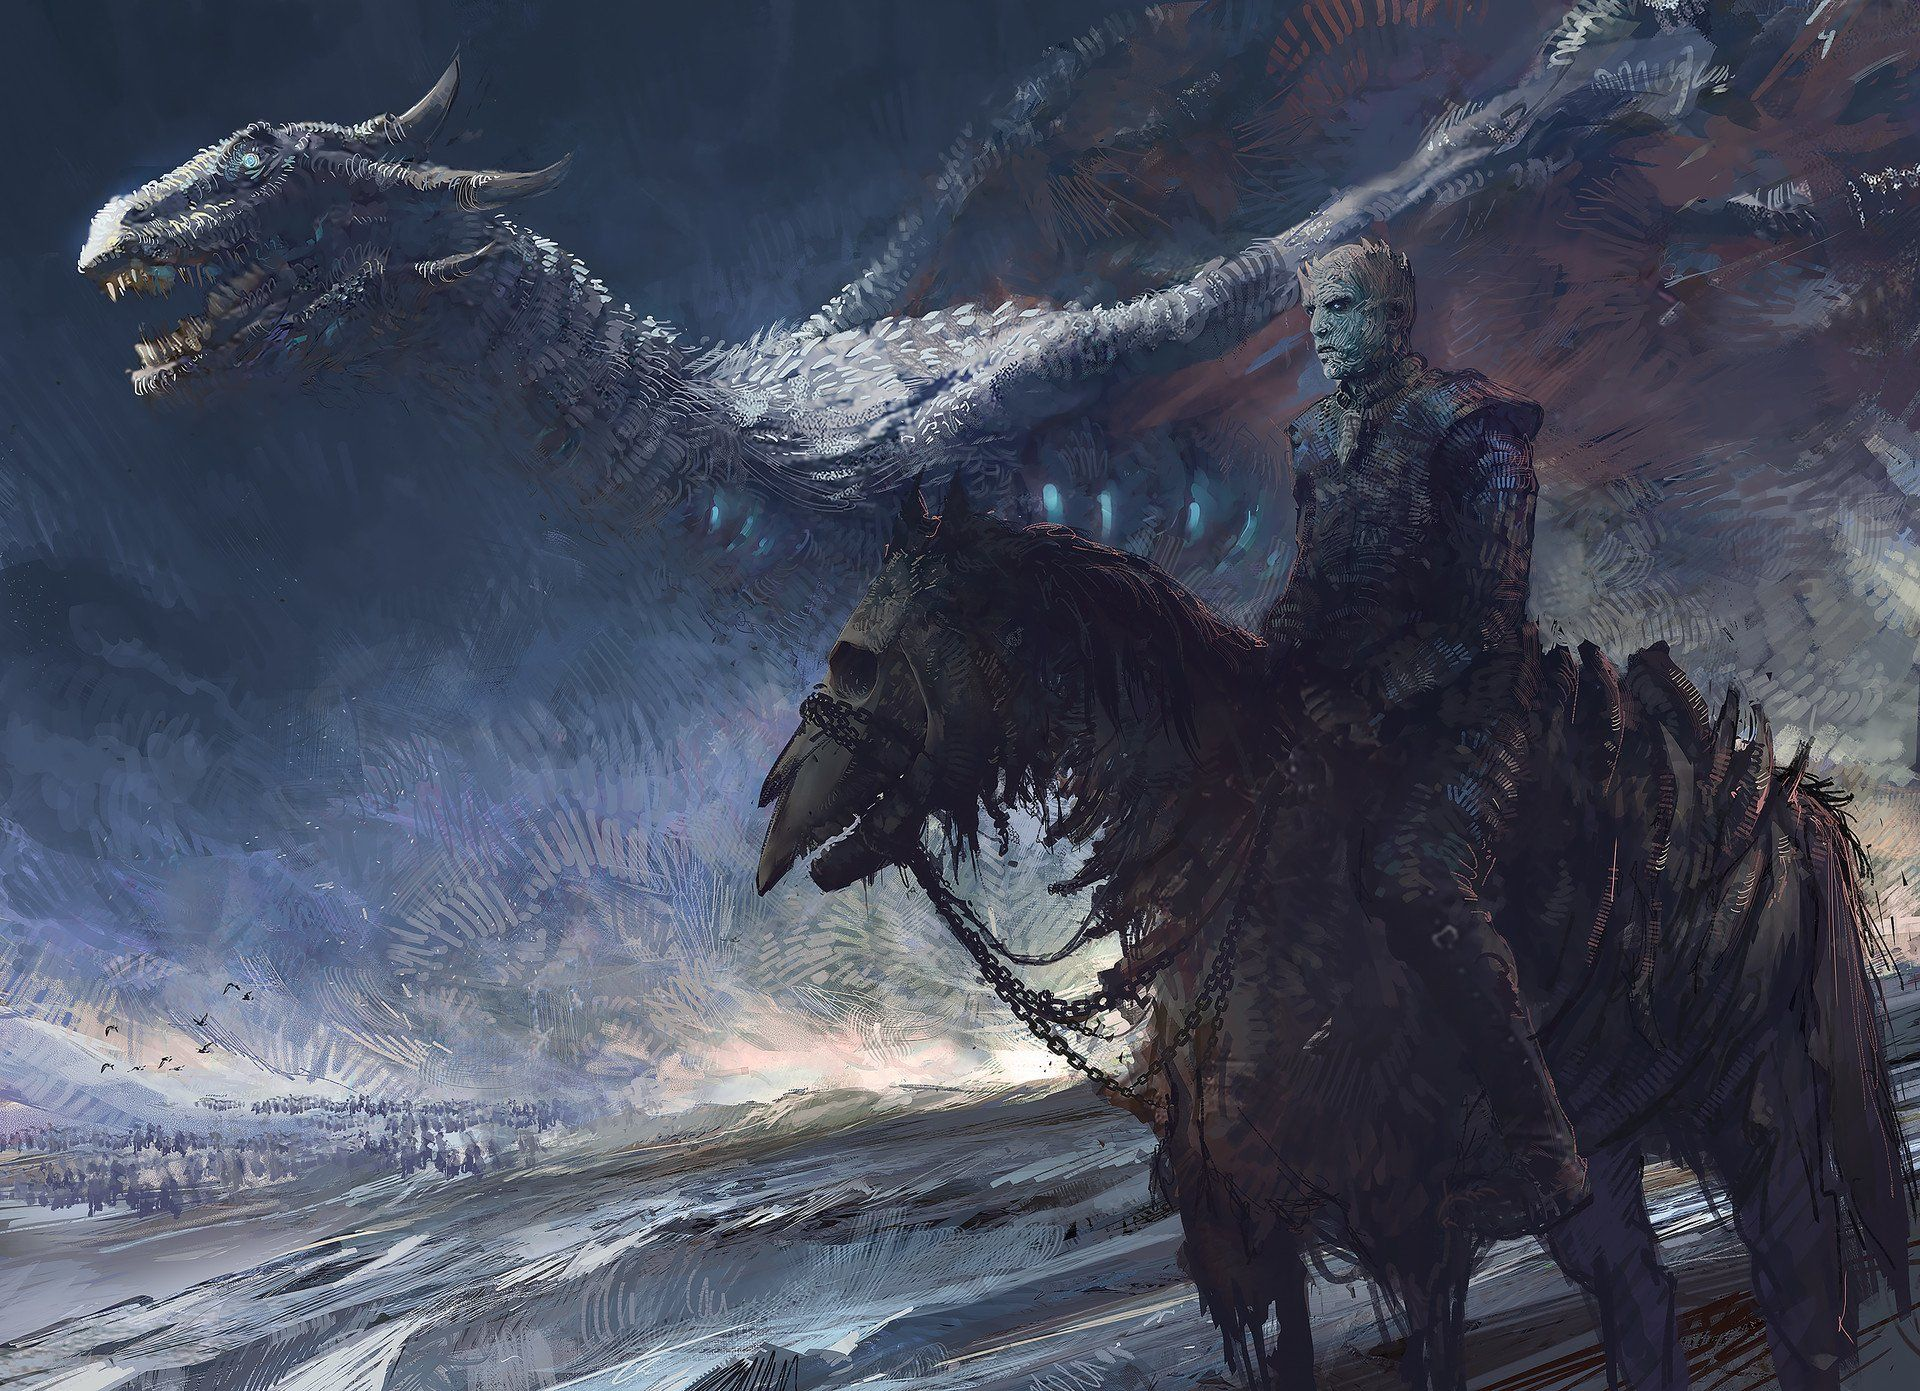 game of thrones wall paper, pictures of dragons fighting